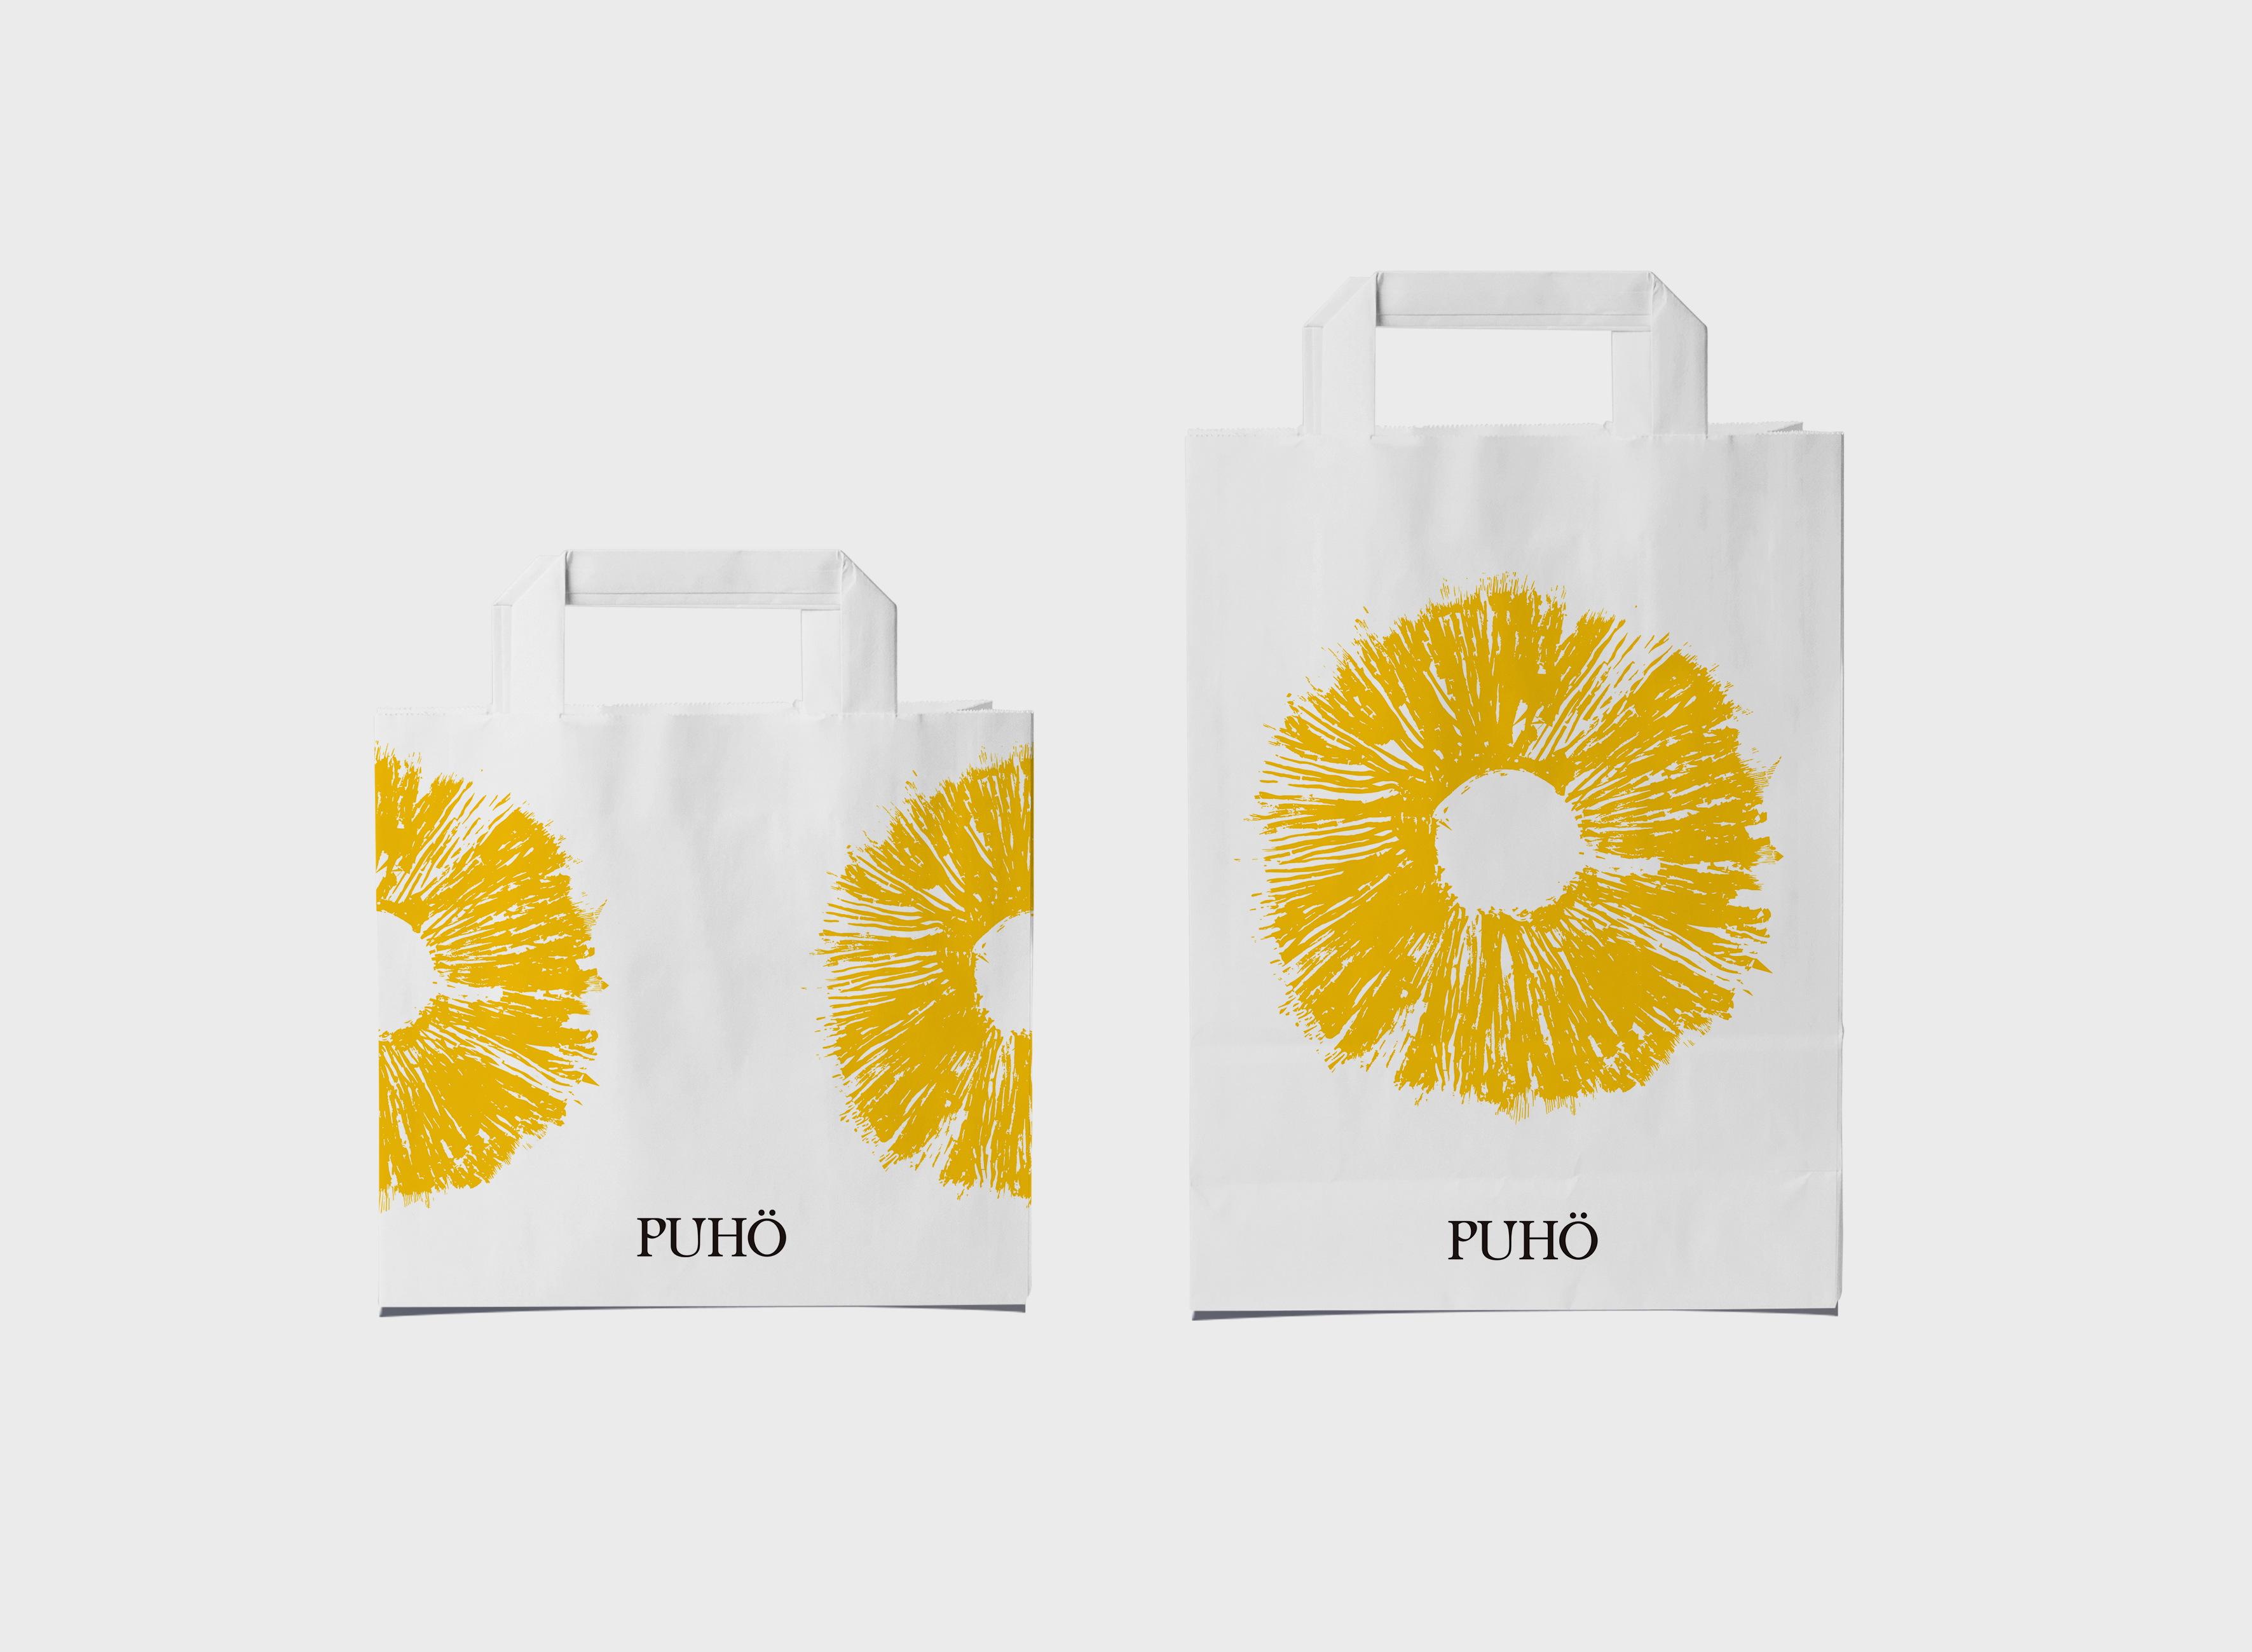 Pineapple Cake Visual Identity Design Concept Created by Lung-Hao Chiang